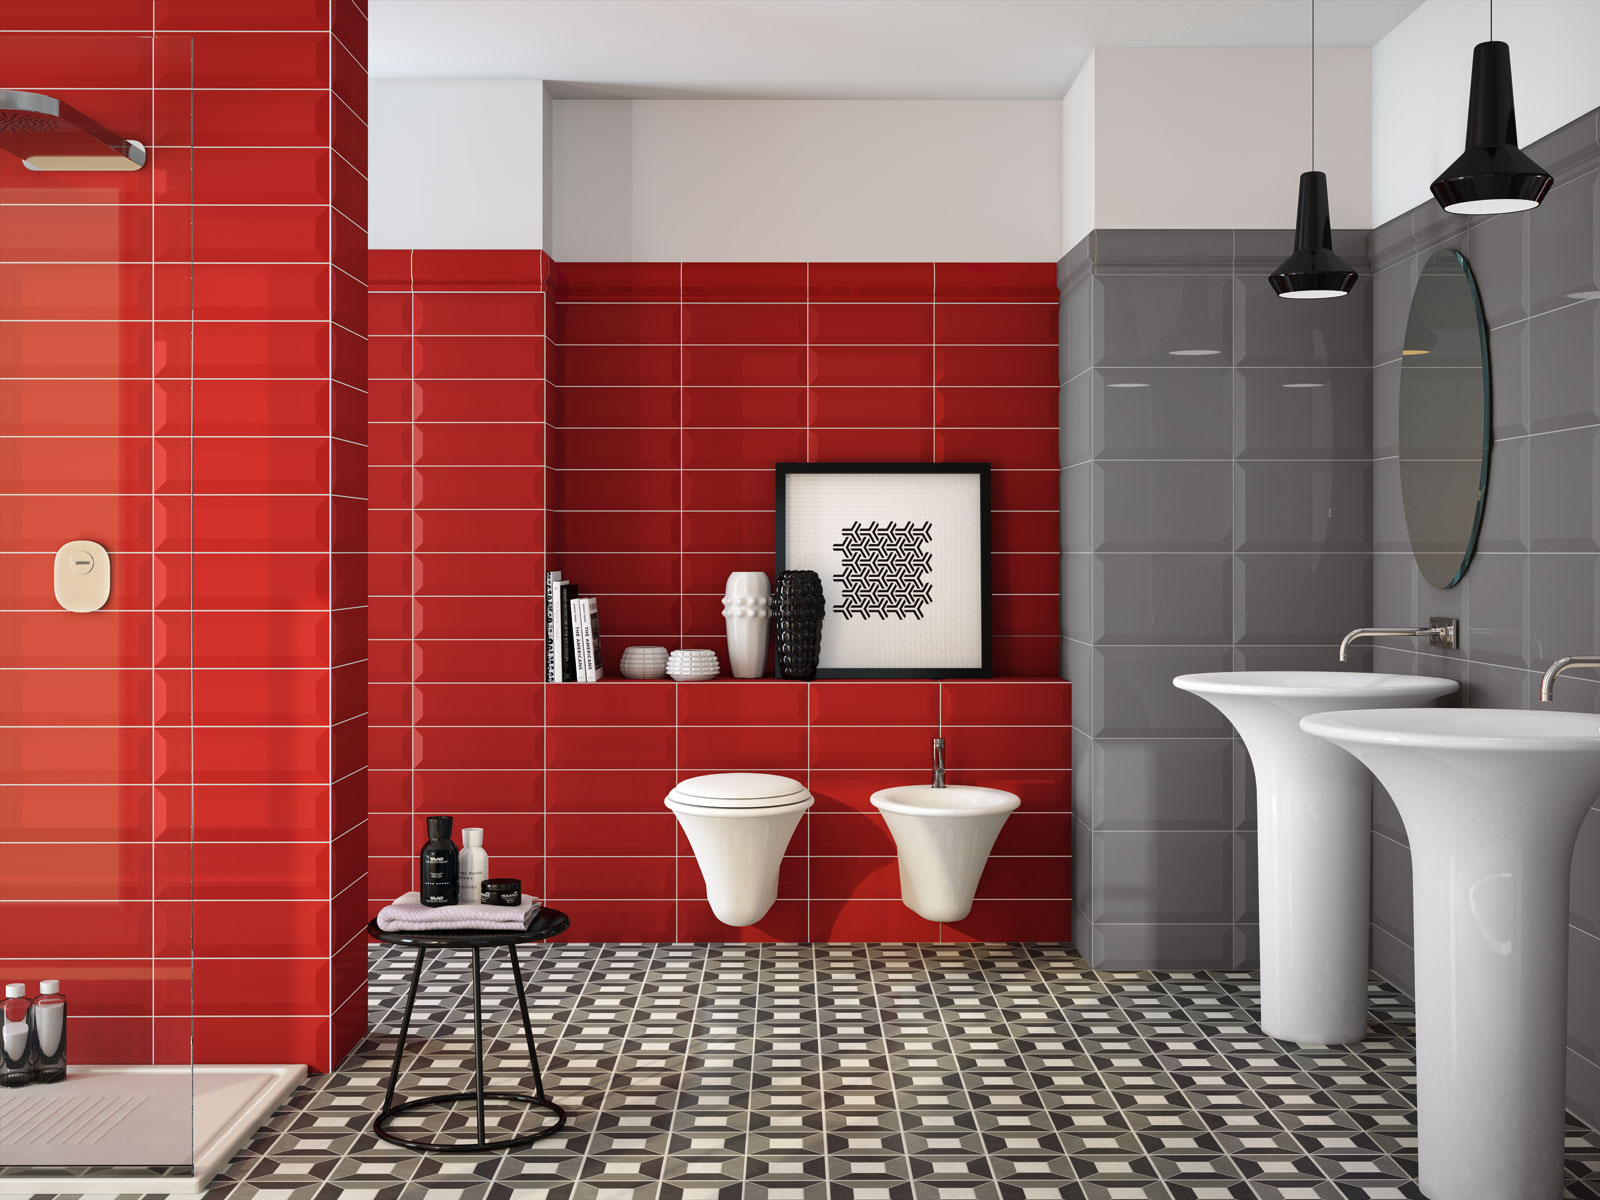 Bathroom Tiles Red oxford - polished porcelain stoneware | marazzi